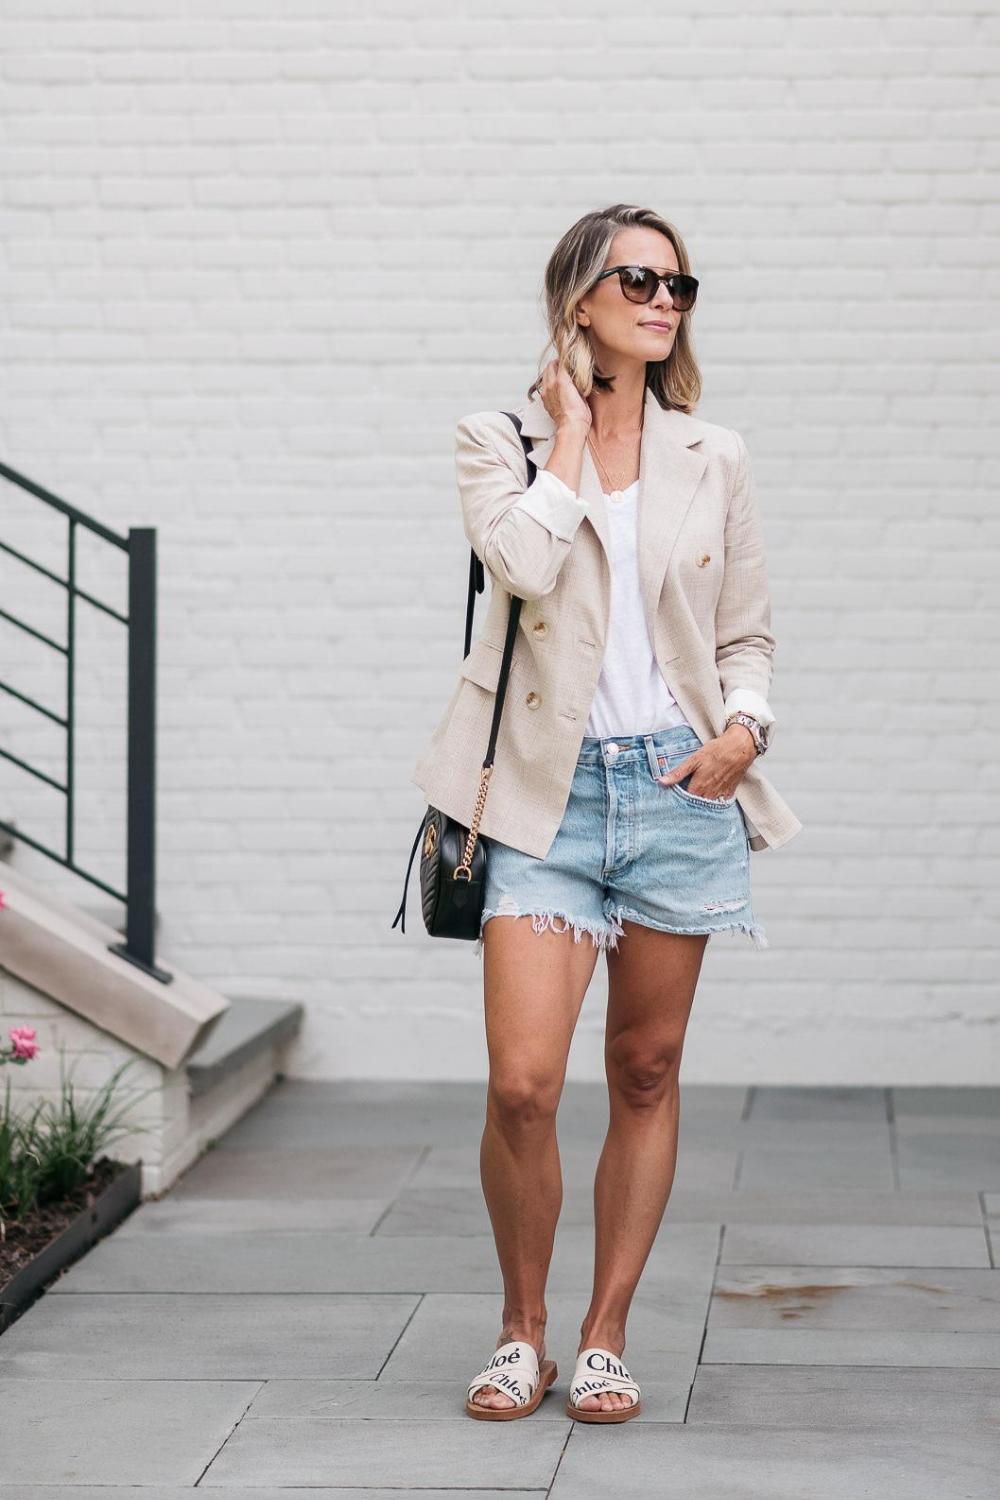 Summer to fall style: blazer and cut offs